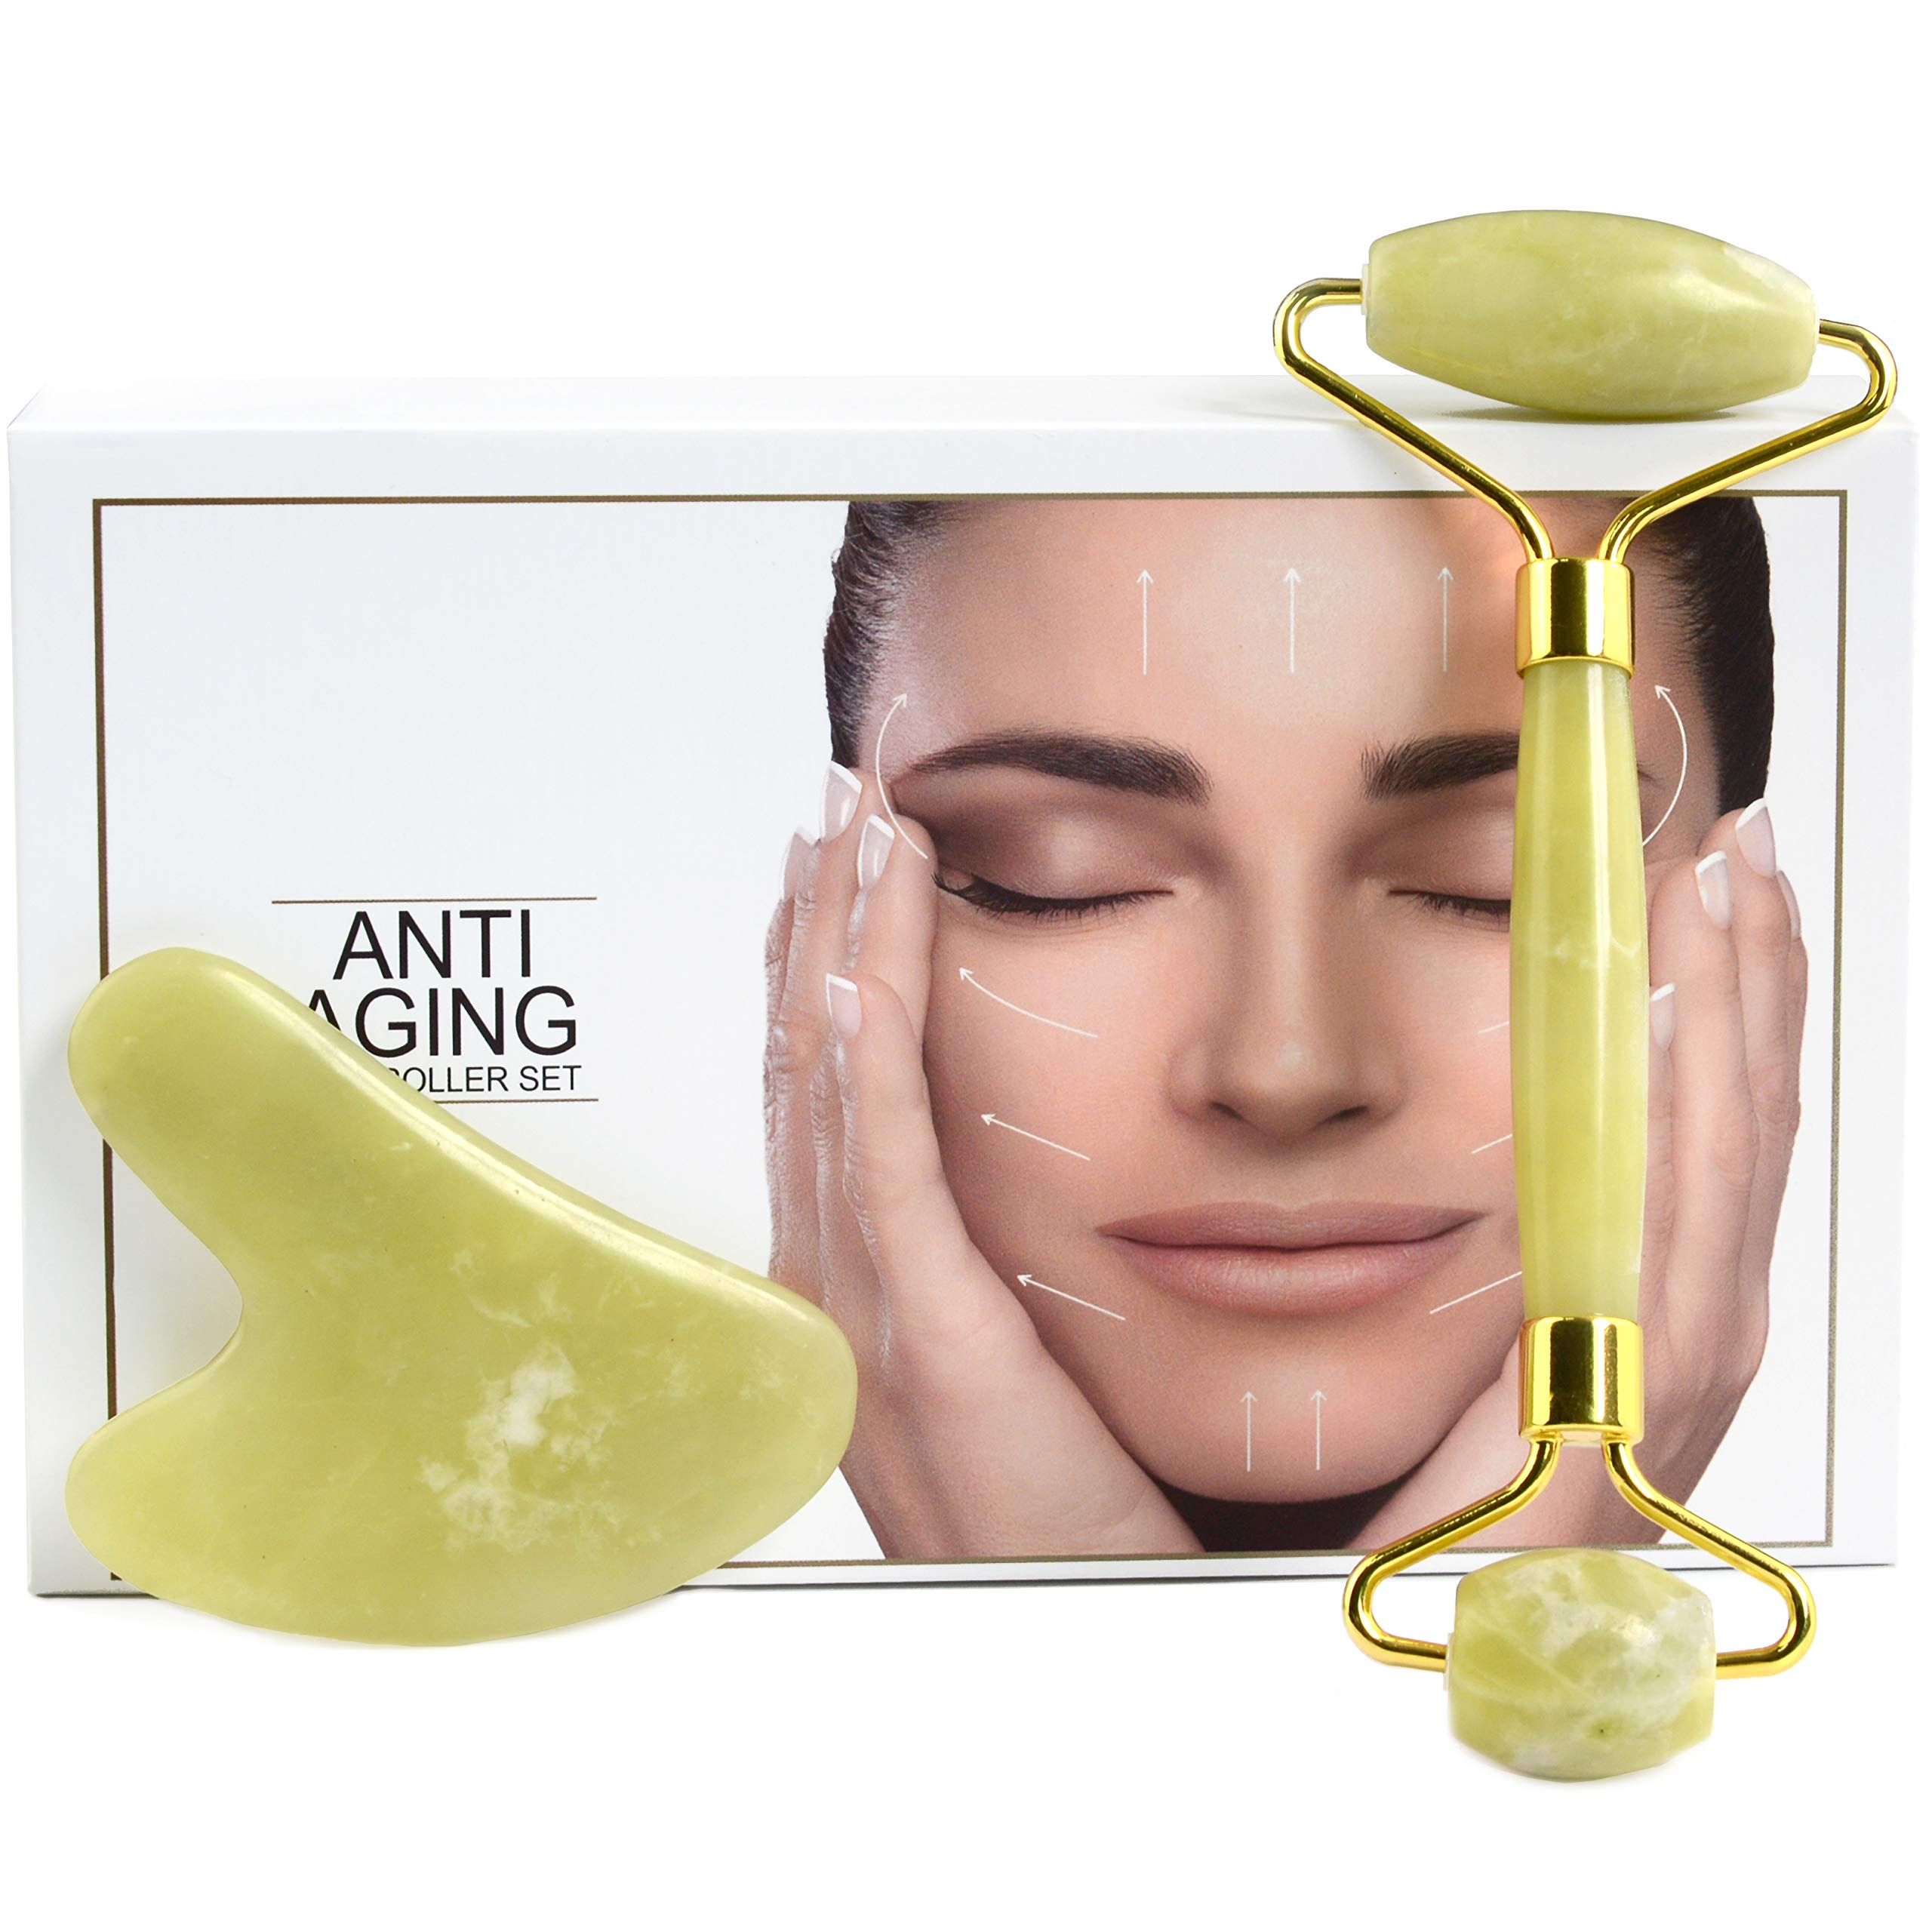 Jade Roller and Gua Sha Set - 2 in 1 Natural Facial Jade Roller and Gua Sha Facial Tool Massager for Anti-Aging, Wrinkles, Slimming, Scraping and Facial Therapy